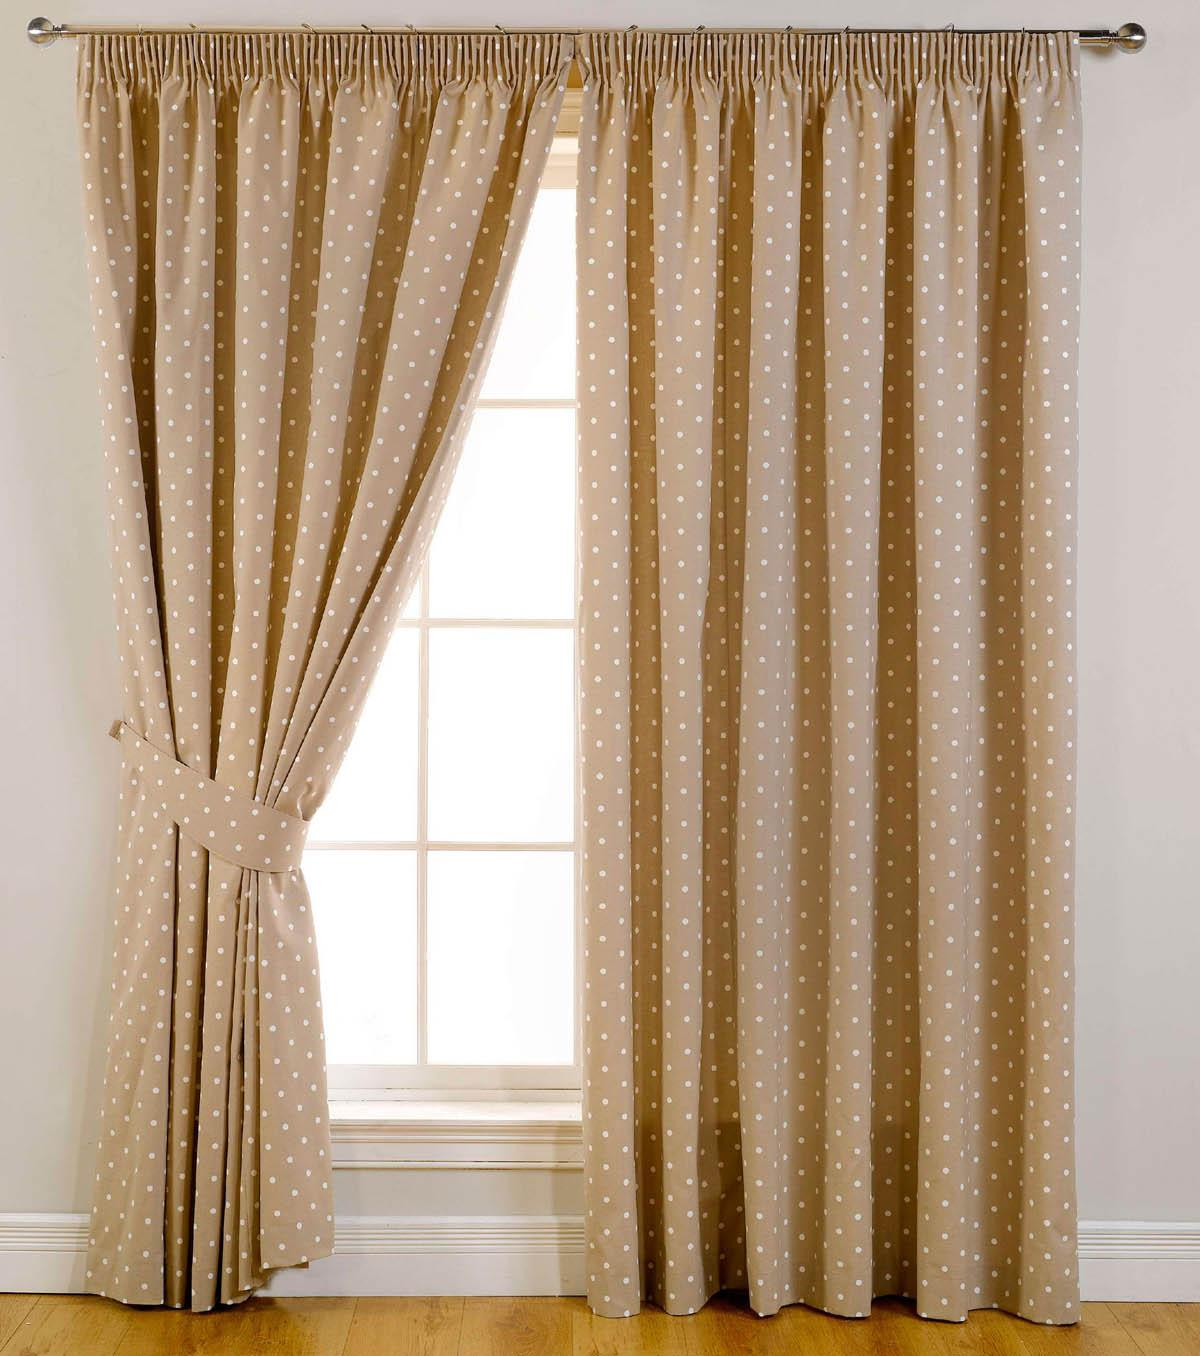 Dotty Ready Made Blackout Curtains Taupe Luxury Headed Curtains